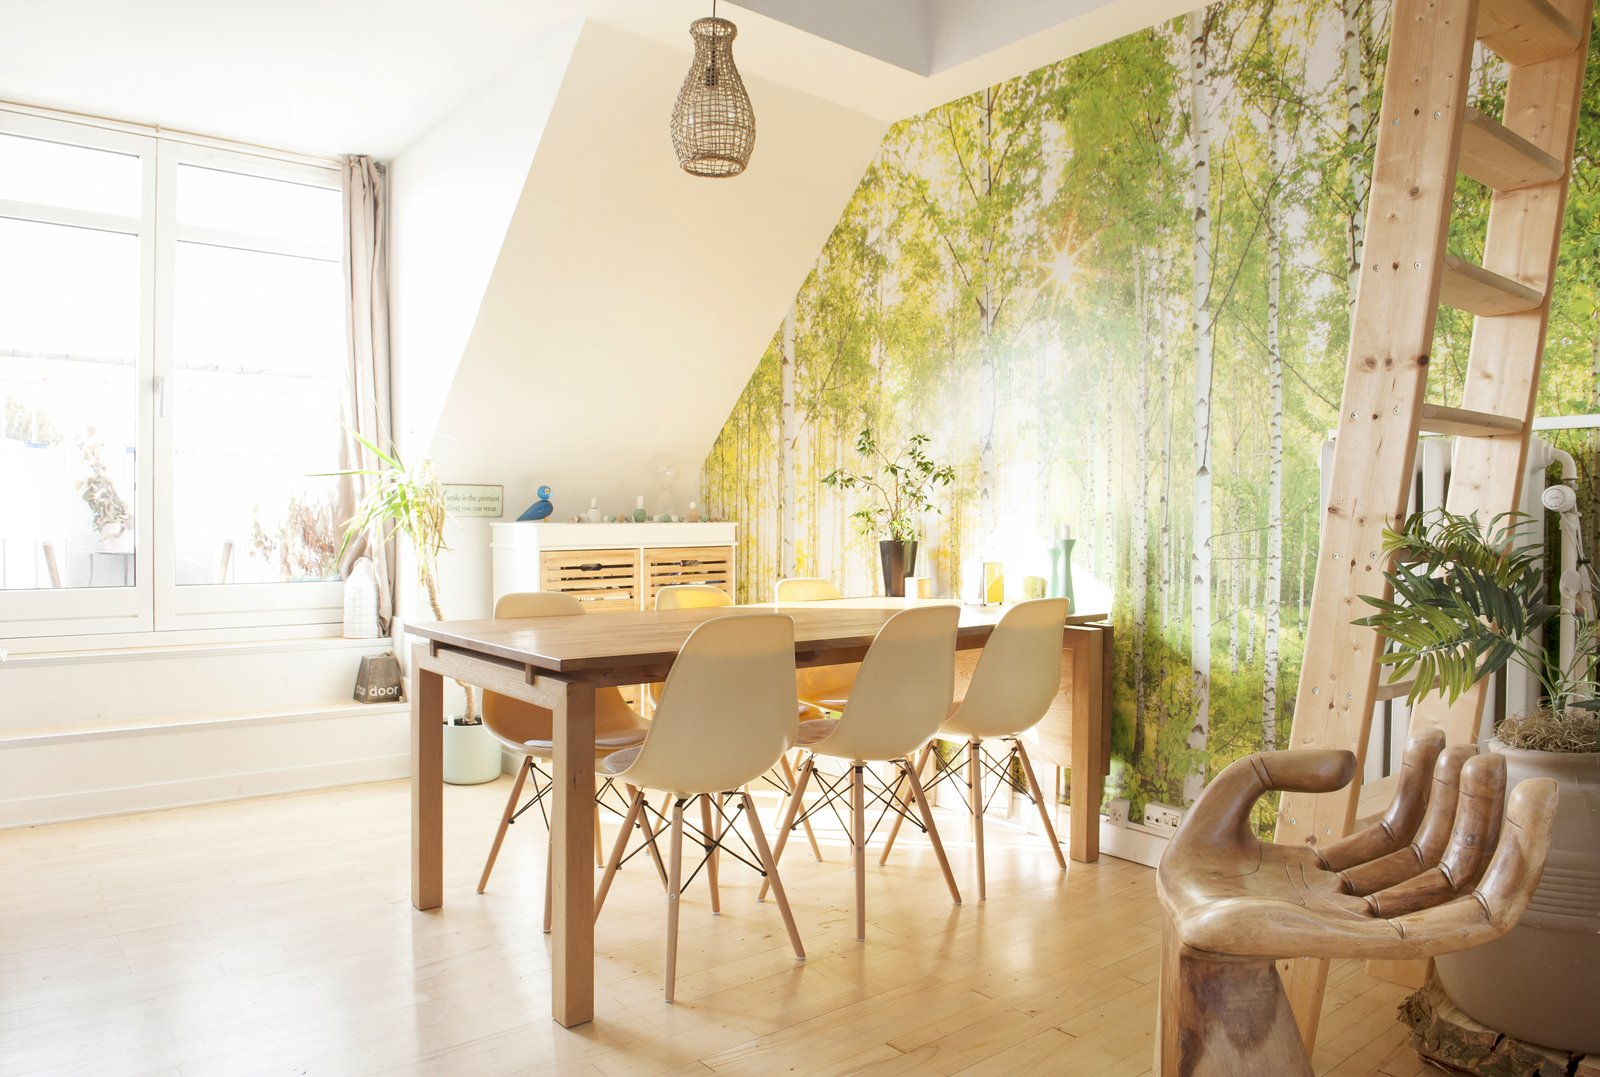 Dining Room, Table, Stools, Pendant Lighting, and Medium Hardwood Floor bright dining area with wooden furniture, live plants, and forest wallpaper  Bringing Nature Inside by Petra Ford